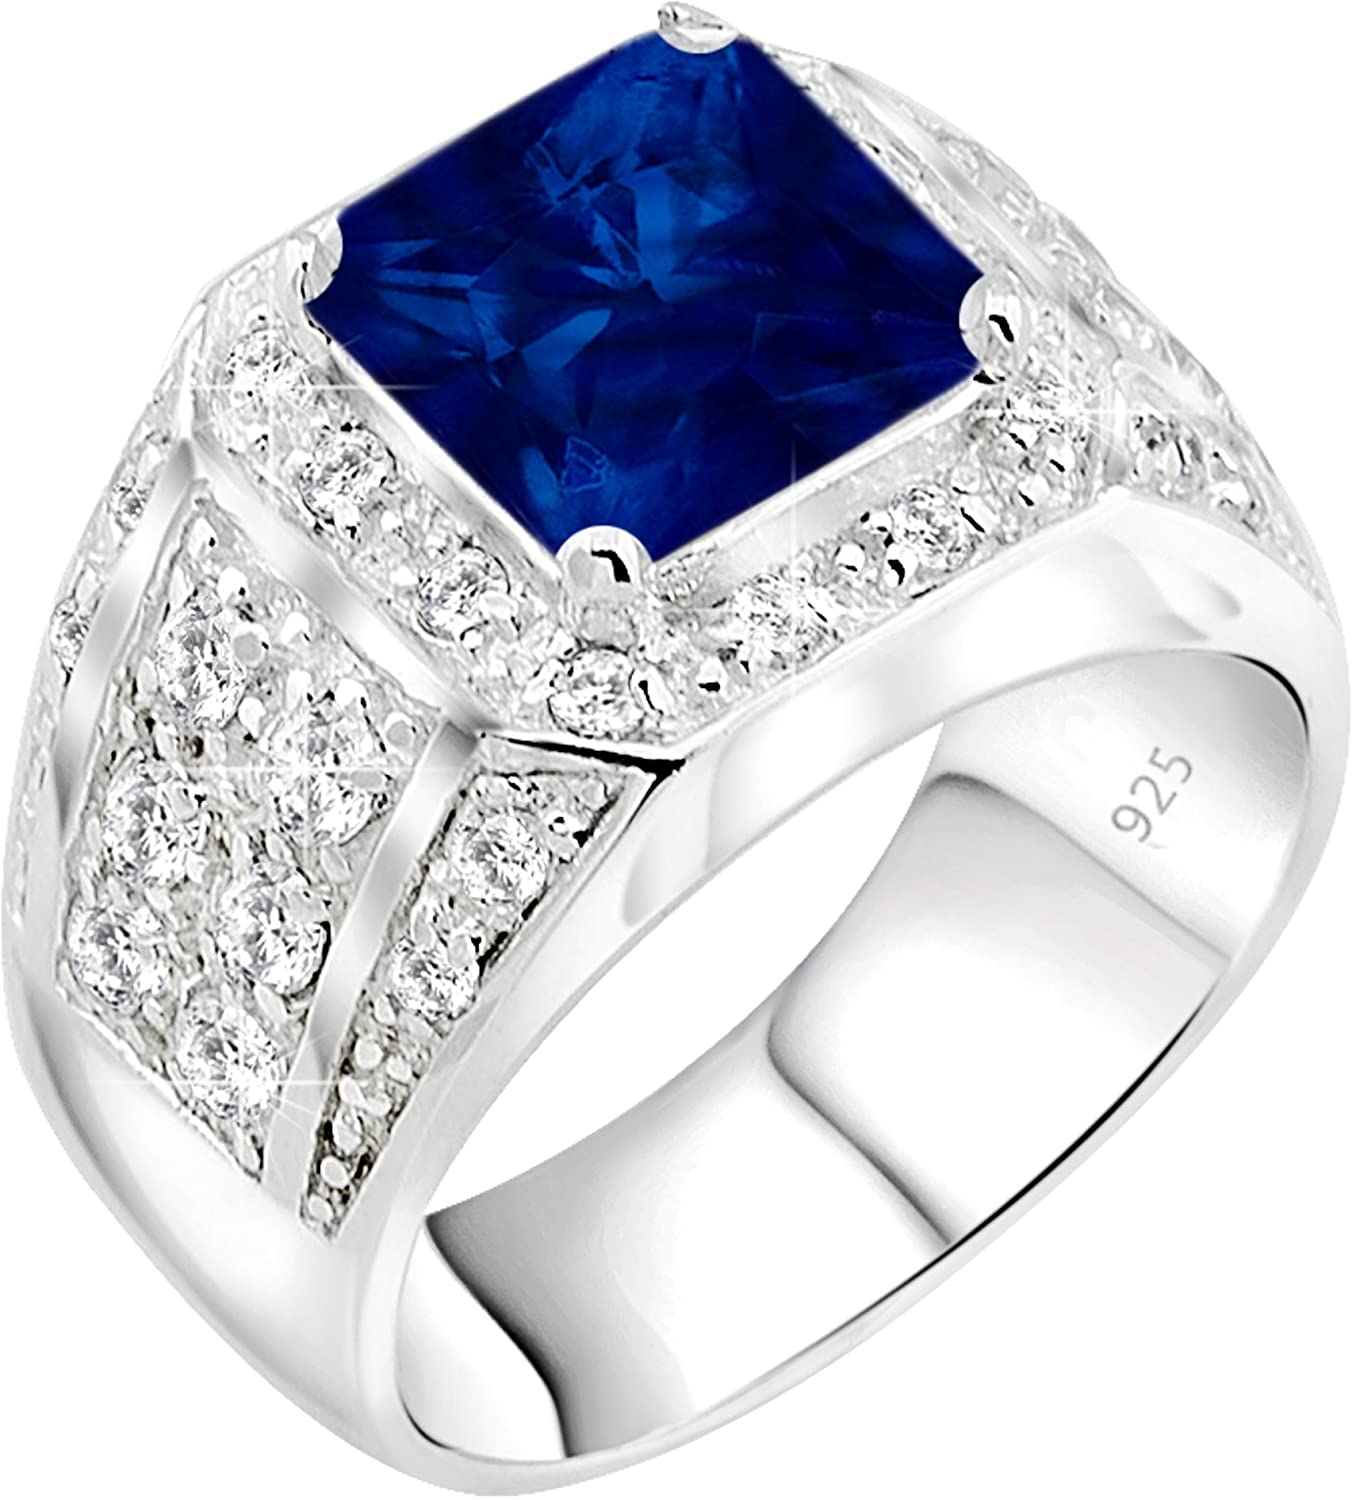 [2-5 Days Delivery] Men's Sterling Silver .925 Ring Synthetic Blue Sapphire Stone High Polish Princess Cut 32 Round Prong-Set Cubic Zirconia Clear (CZ) Stones